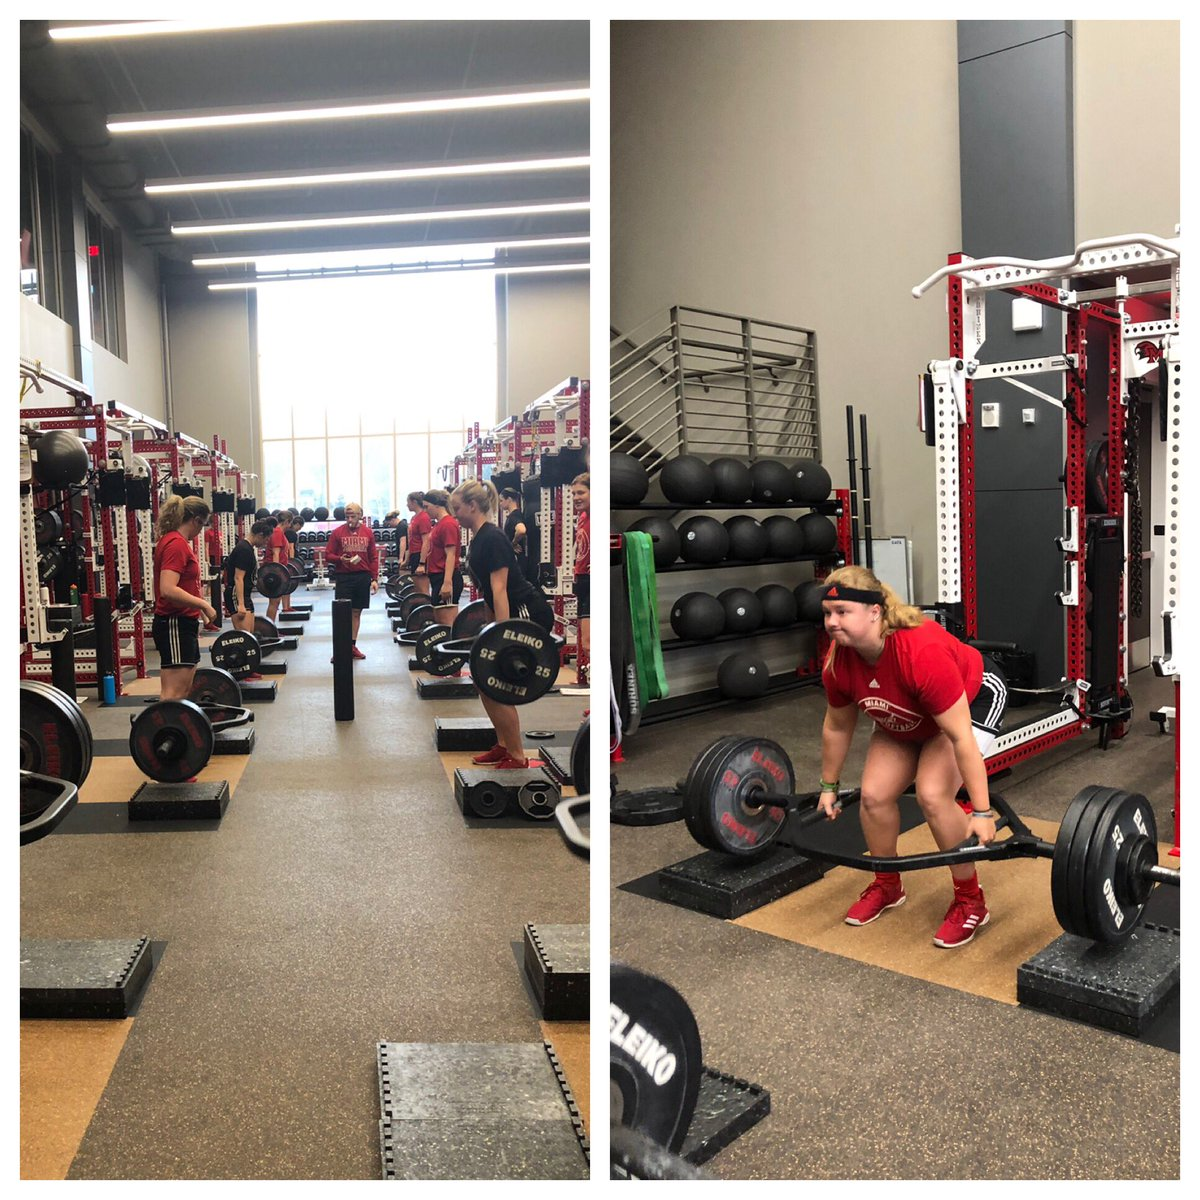 Our RedHawks @MiamiOH_SB Liftin' that Big Girl Weight!! #RiseandGrind #AlwaysWorkin<br>http://pic.twitter.com/sF5kOoa83I